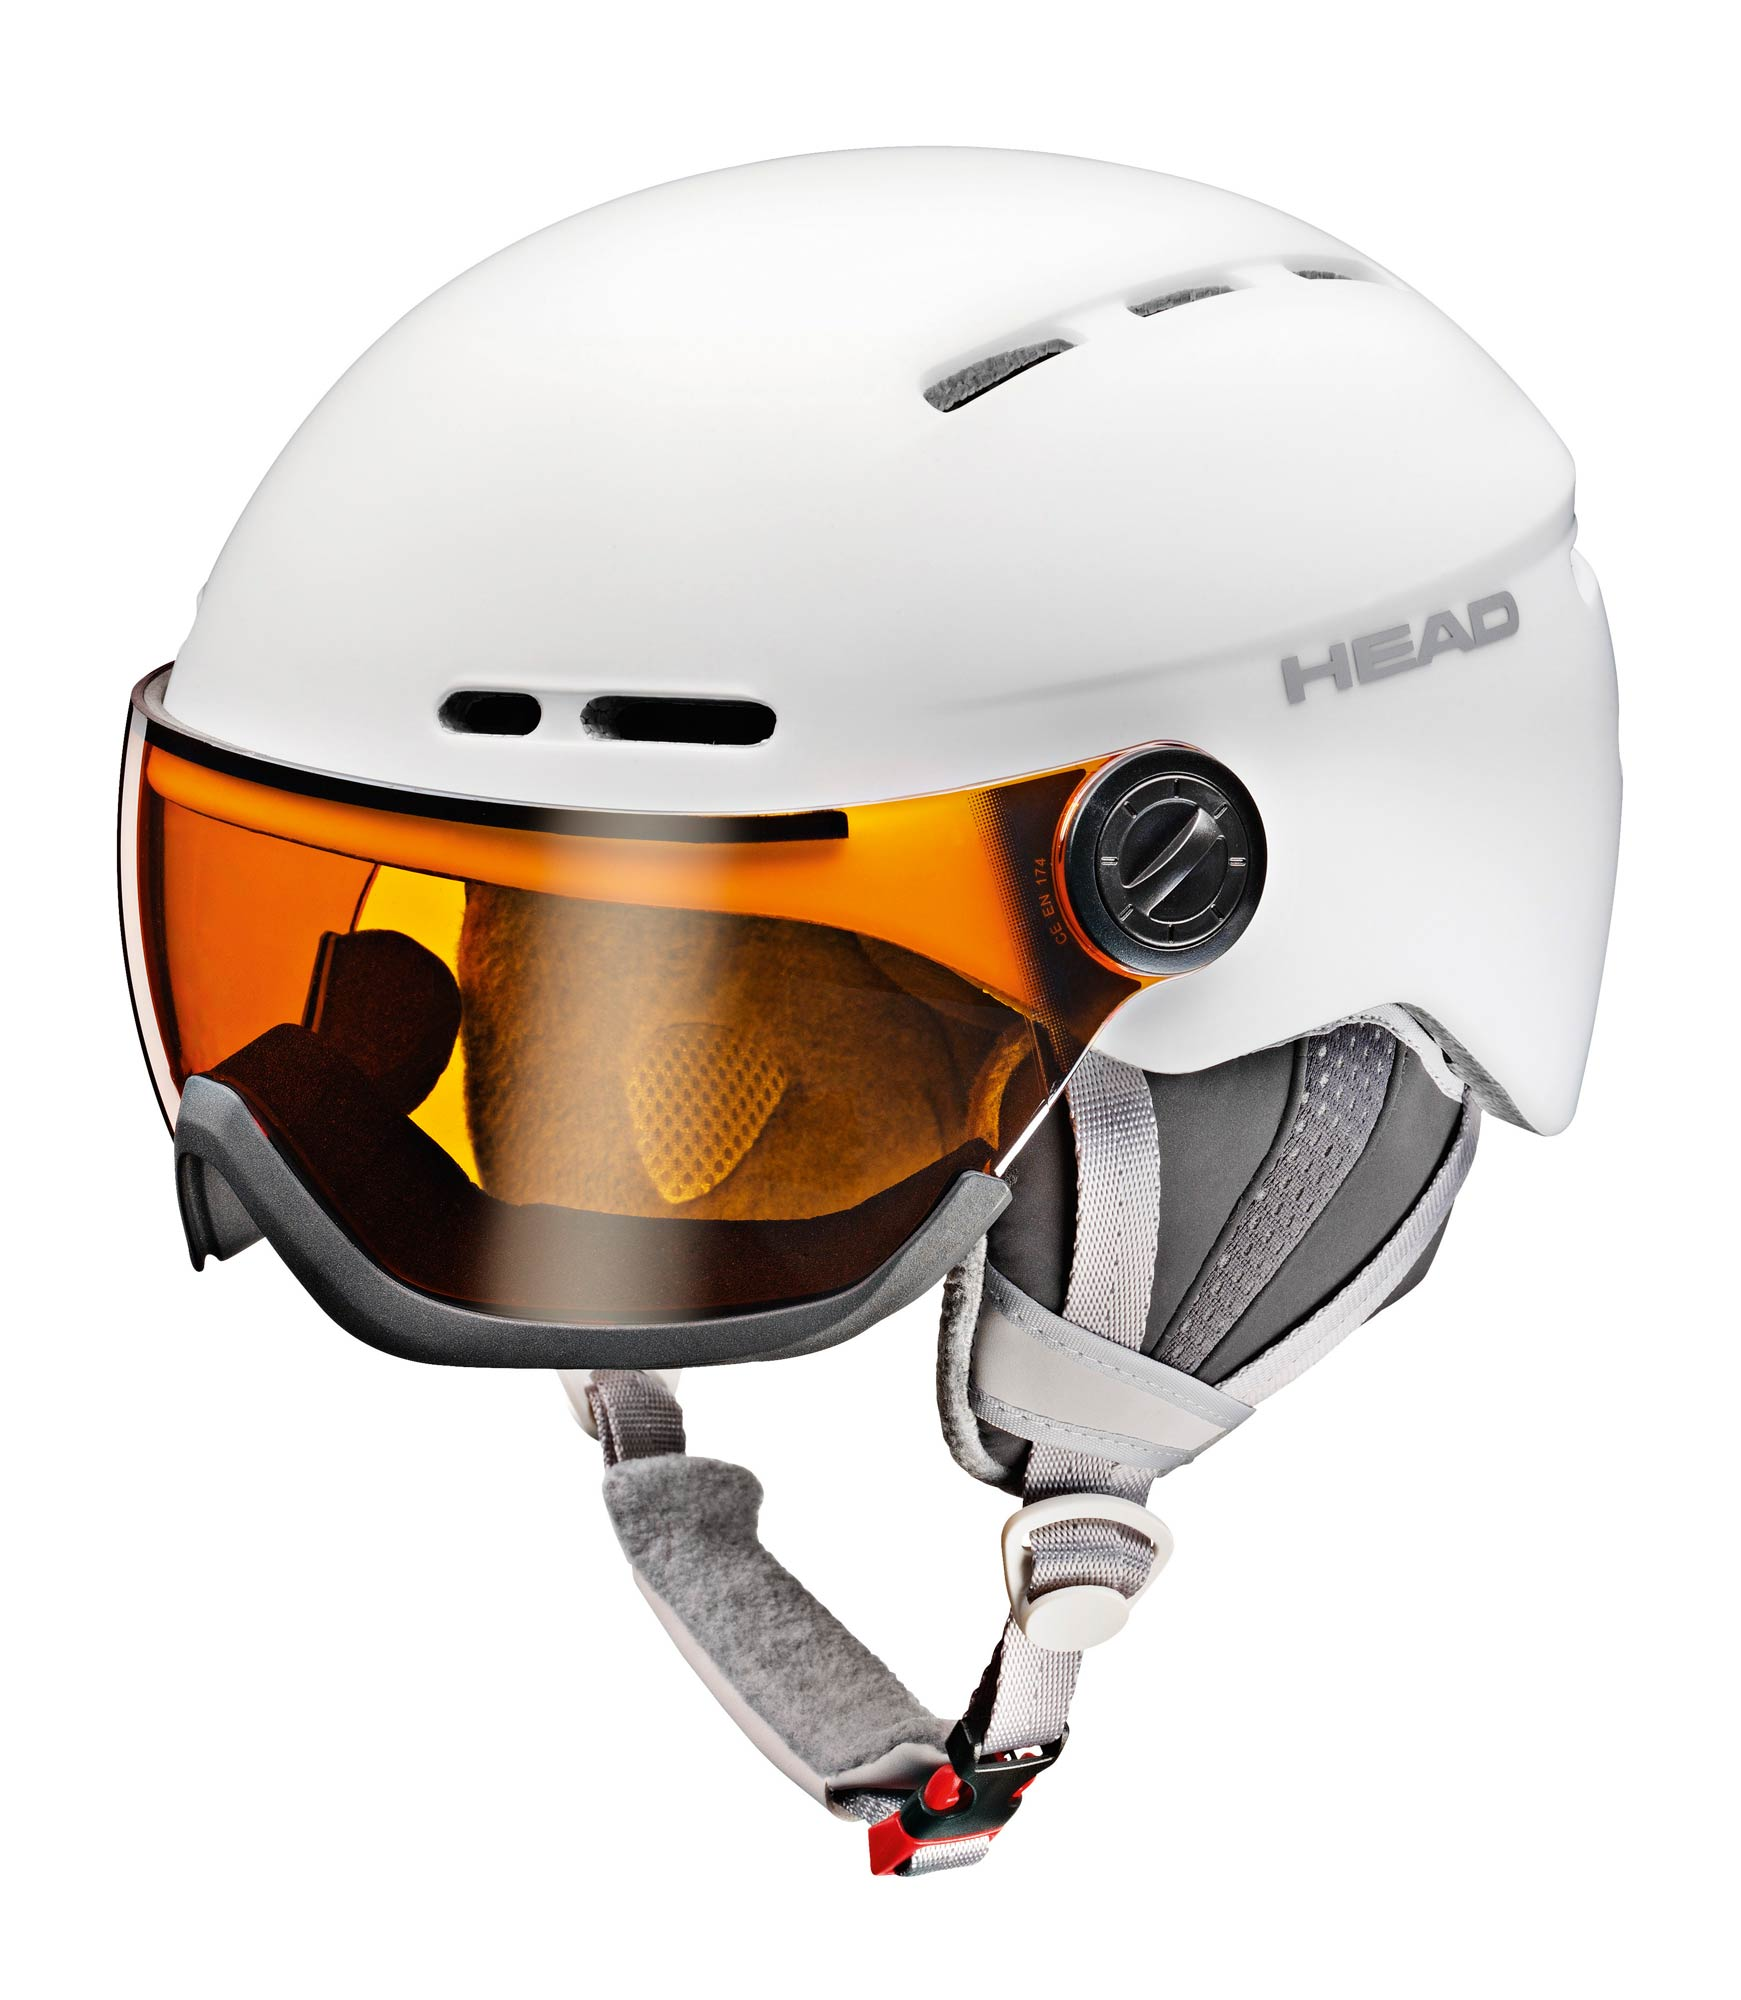 Head Queen white - Damen Skihelm mit Visier